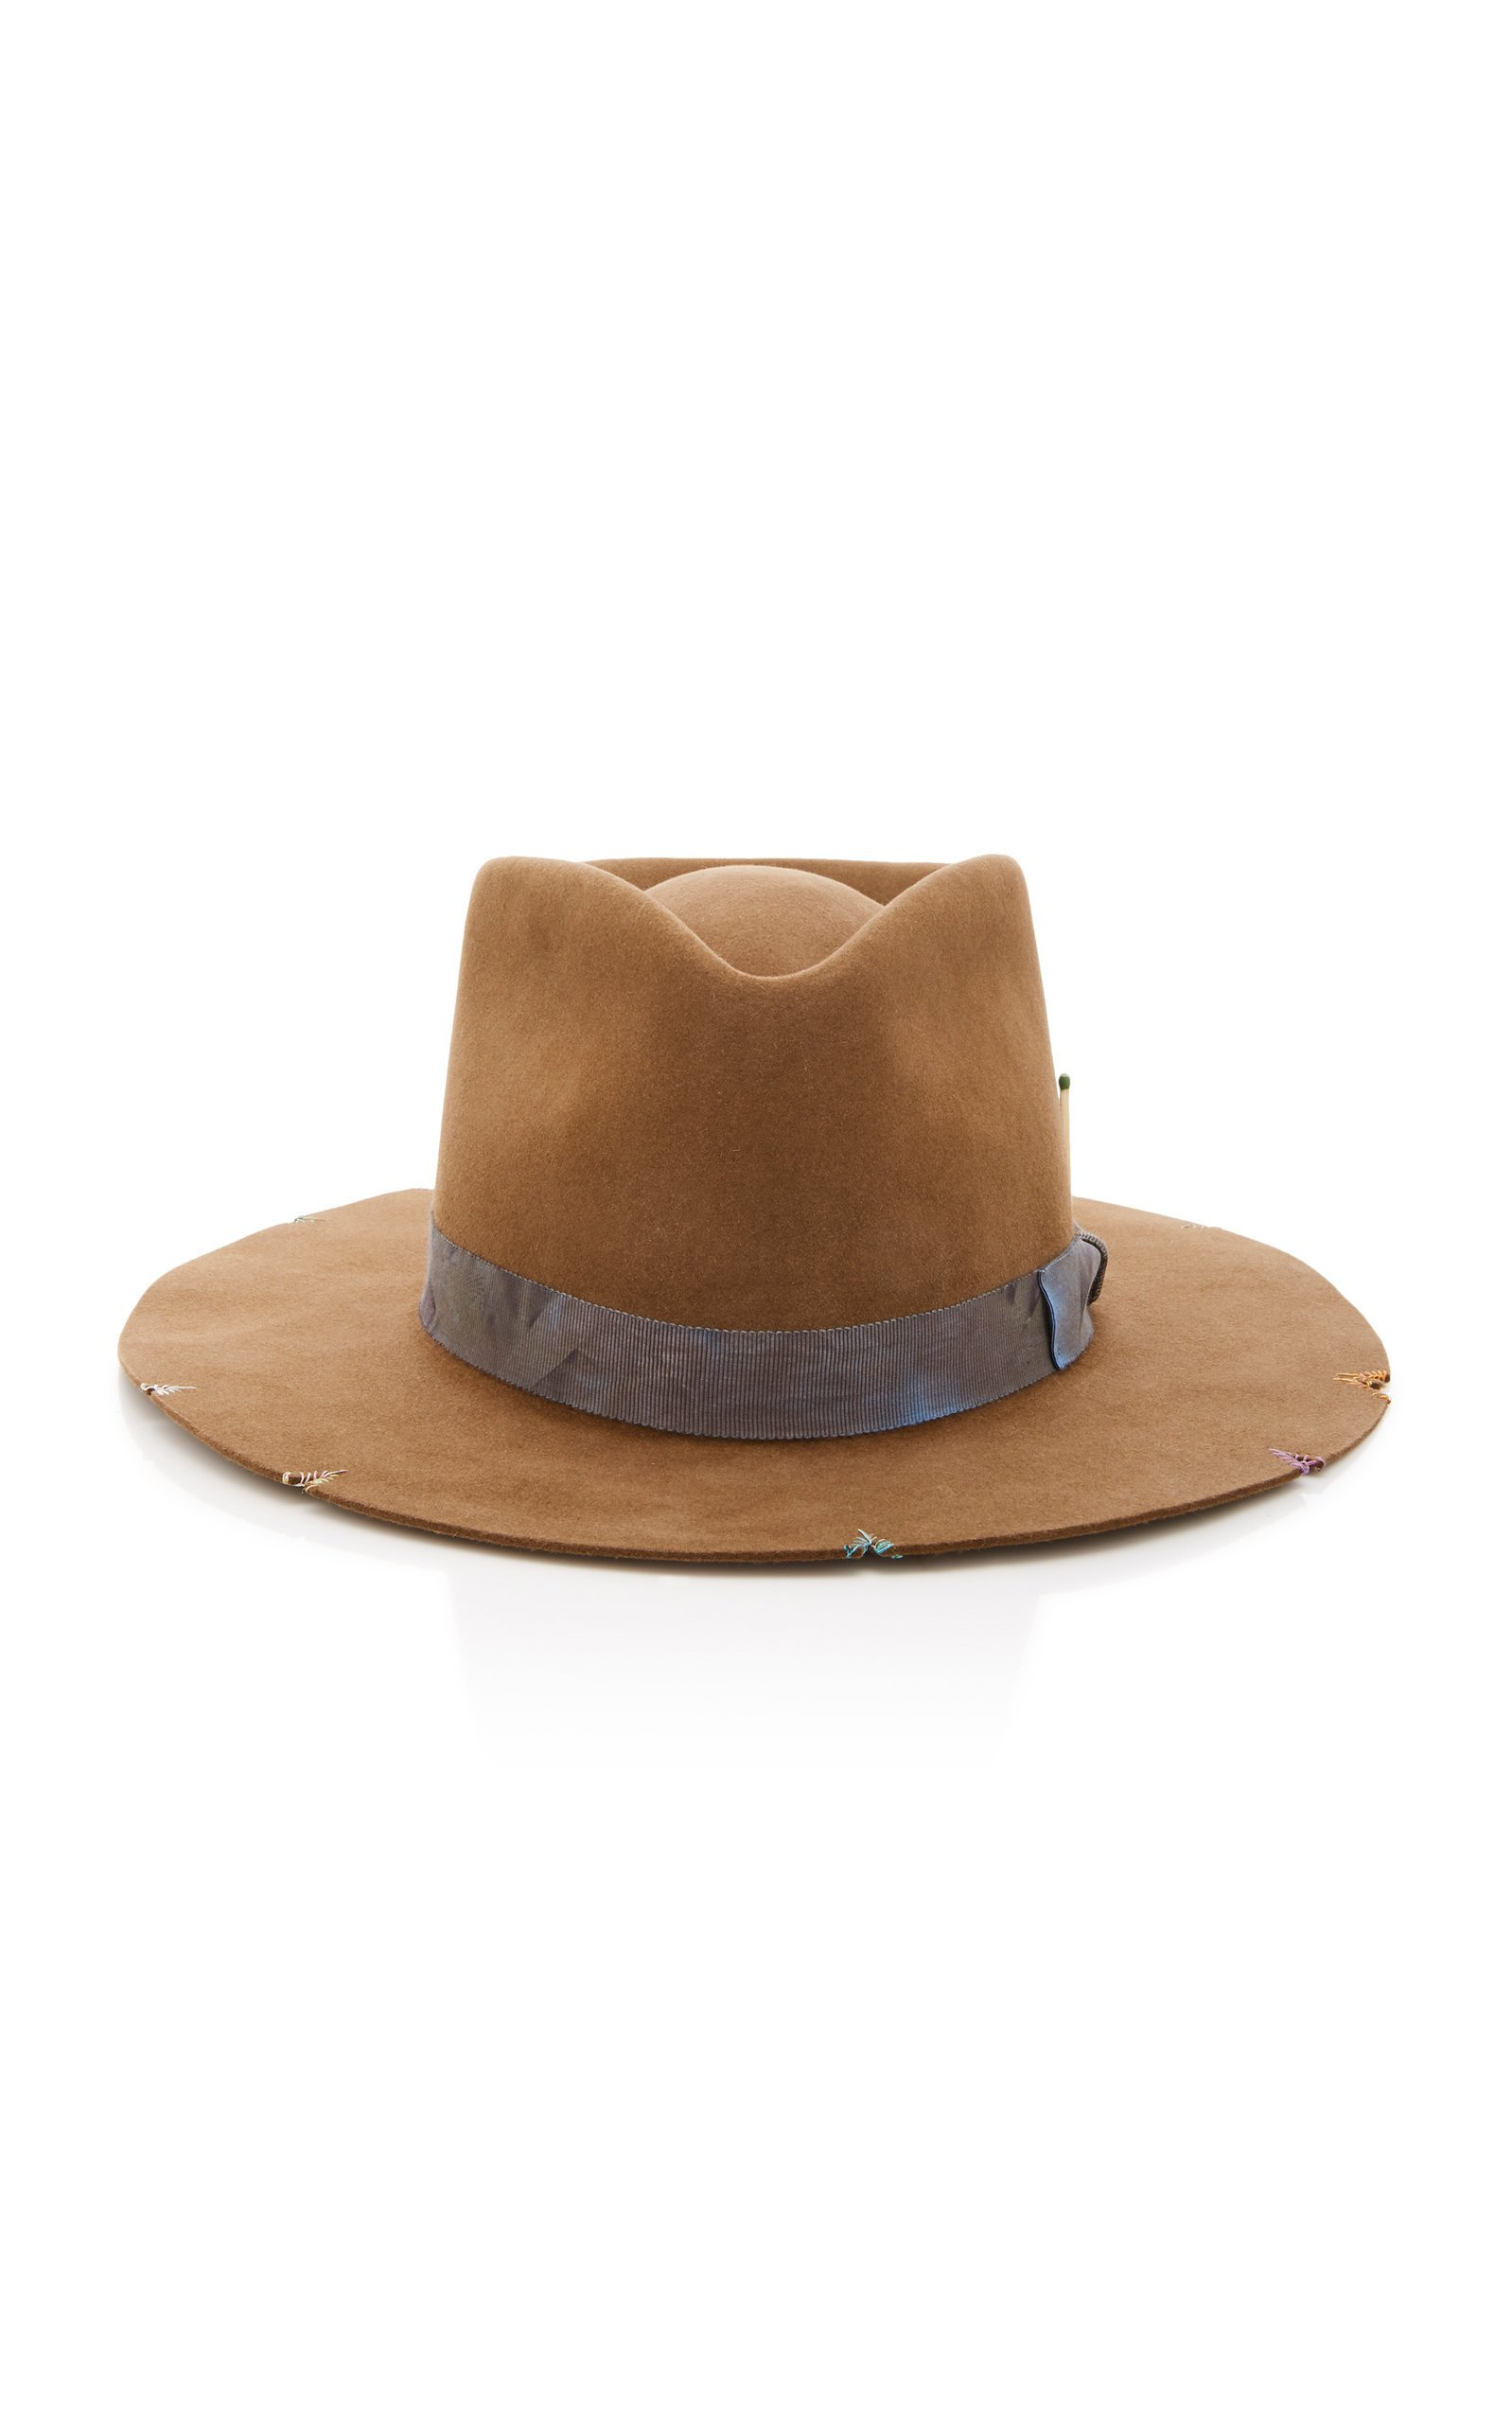 Nick Fouquet Whiskey Springs Ribbon-Trimmed Felt Hat Size: 7 1/8